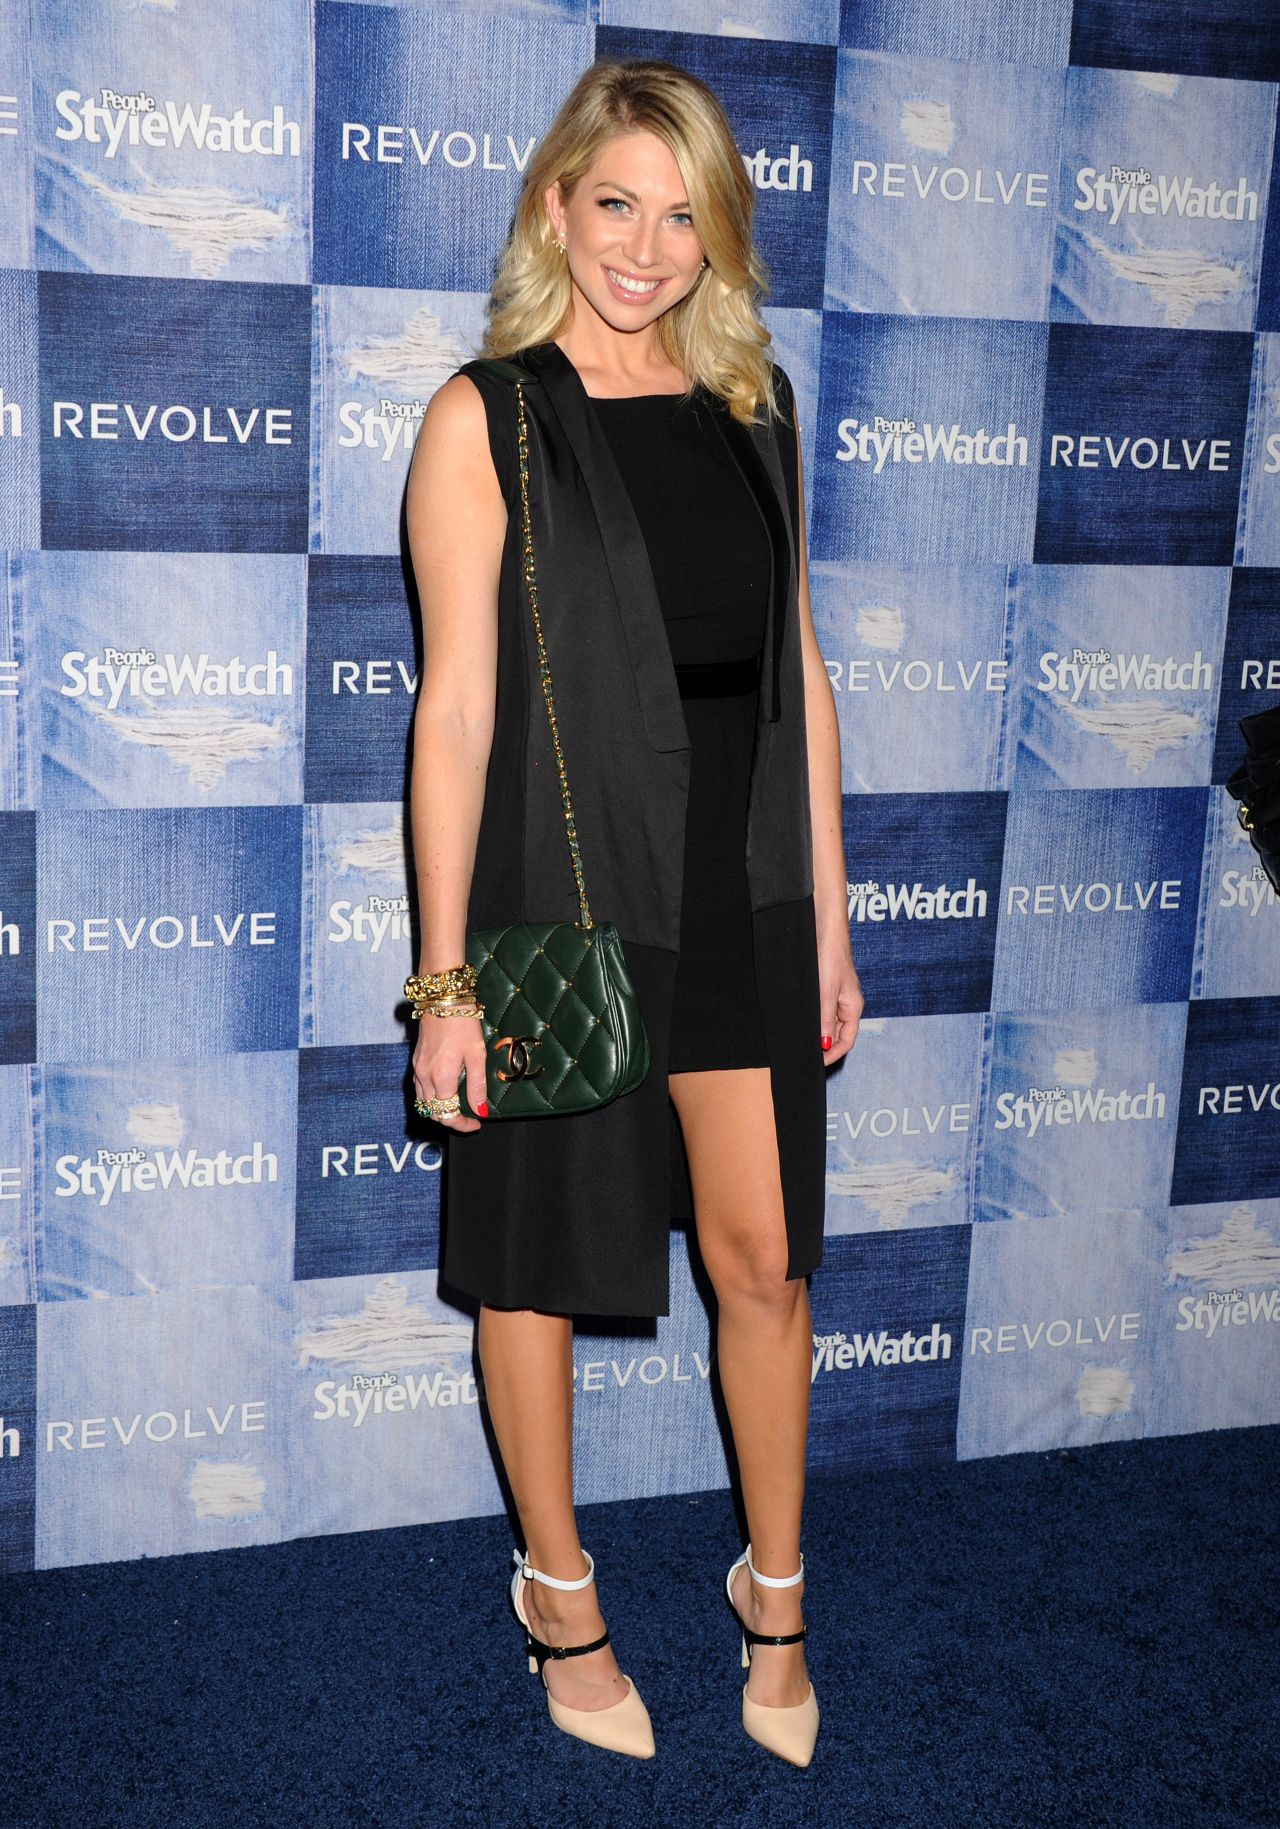 Stassi Schroeder - People StyleWatch 2014 Denim Party in LA